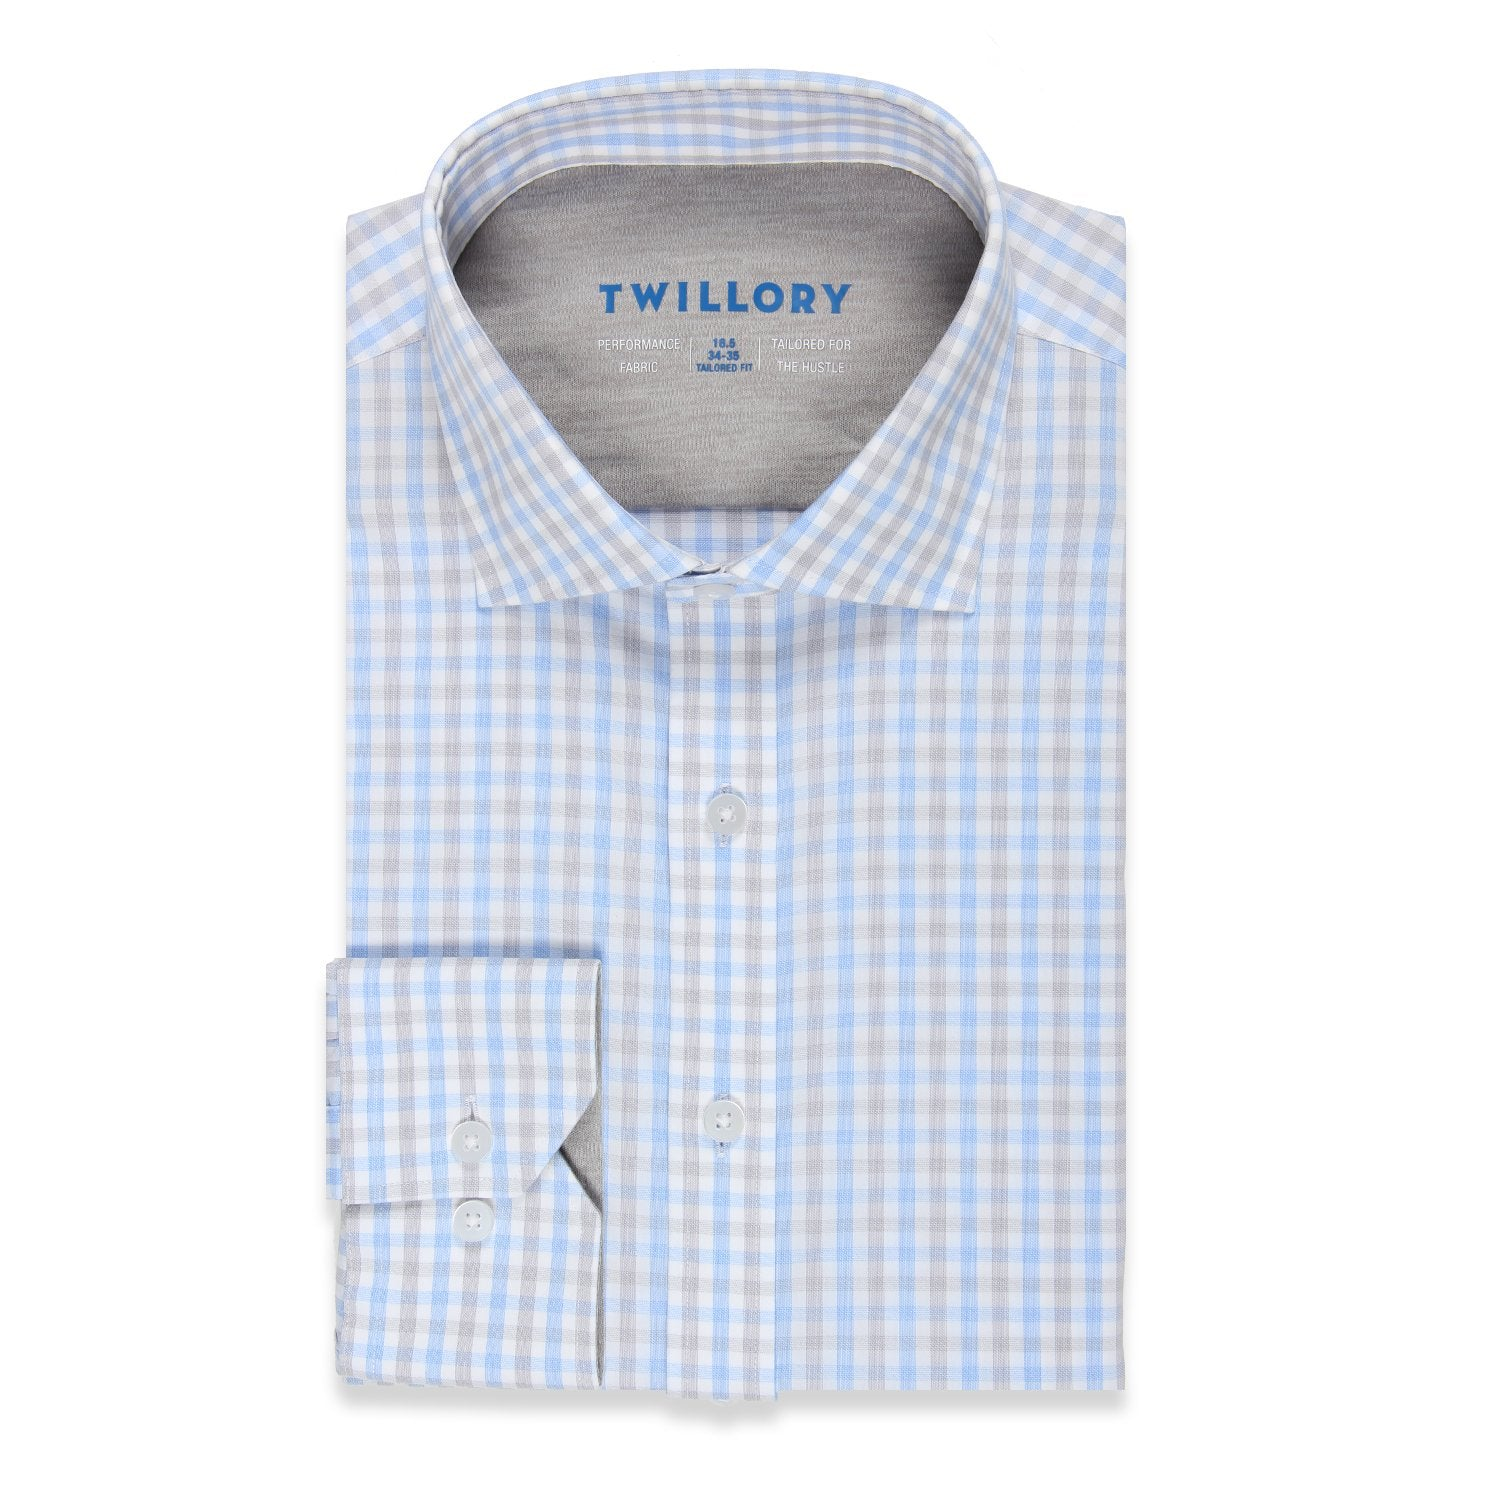 Twillory Investor Performance Tattersall Tailored Button Down